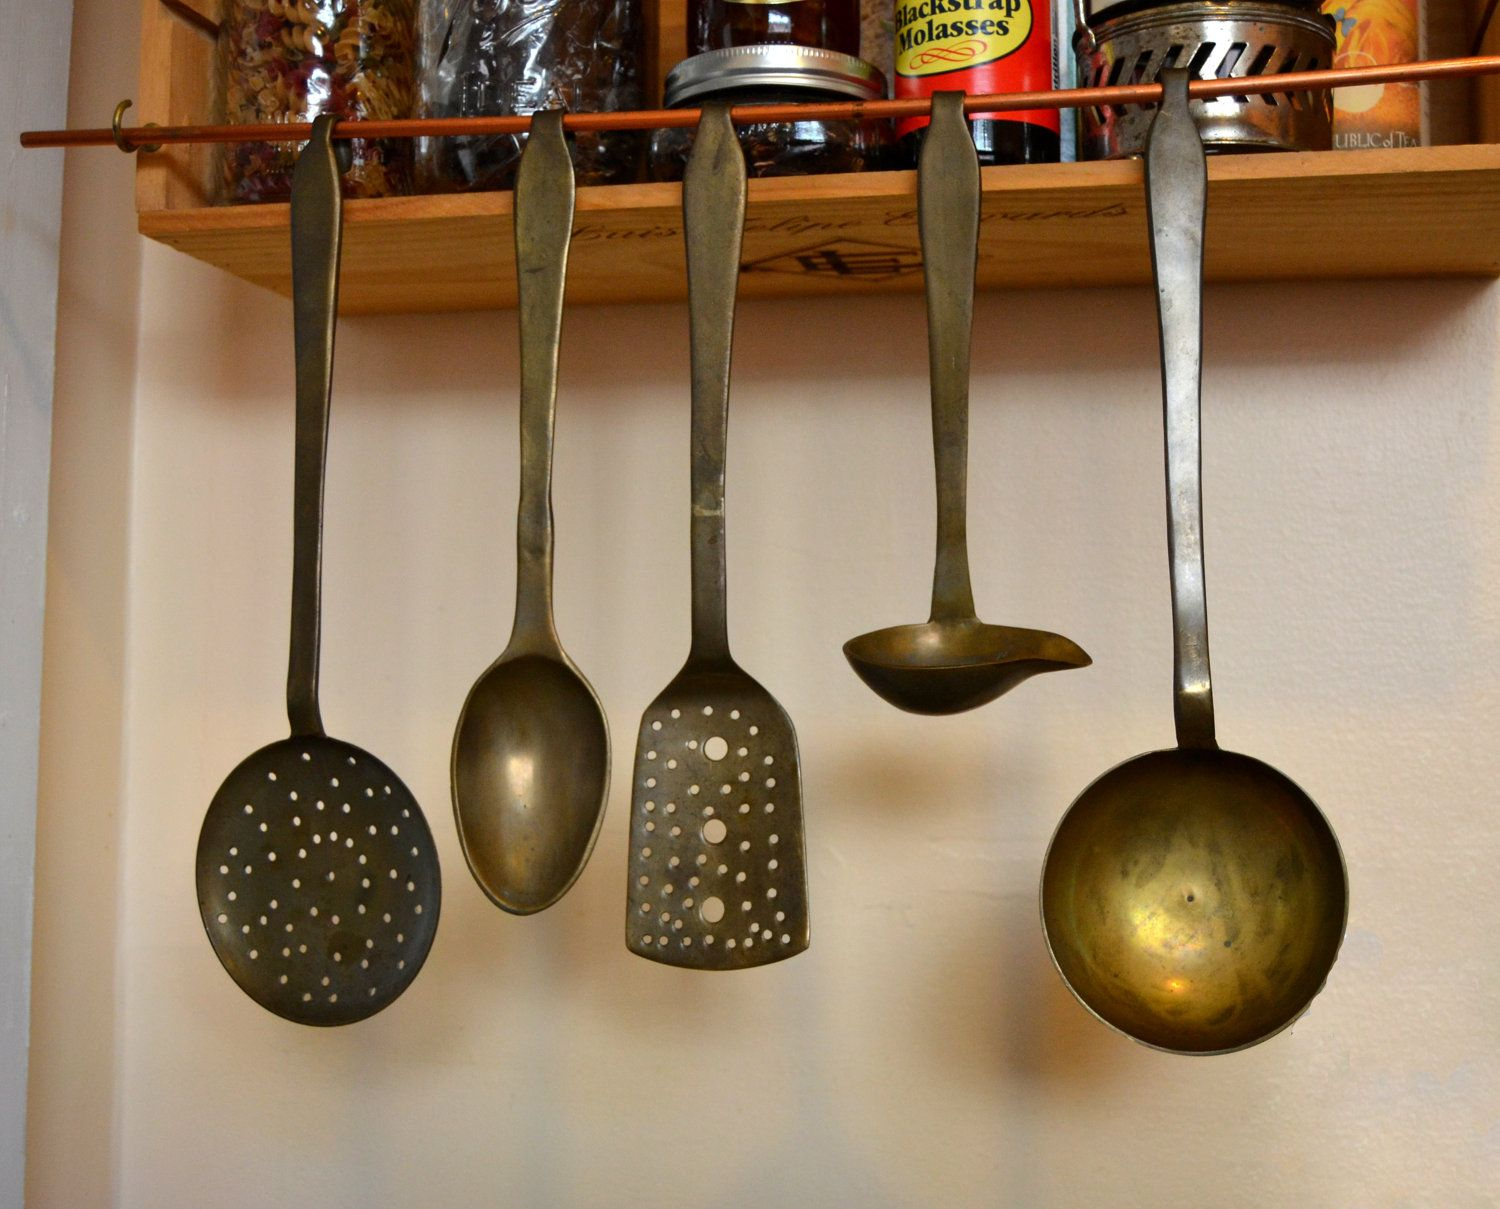 Reserved Vintage Solid Brass Cooking Utensils From India